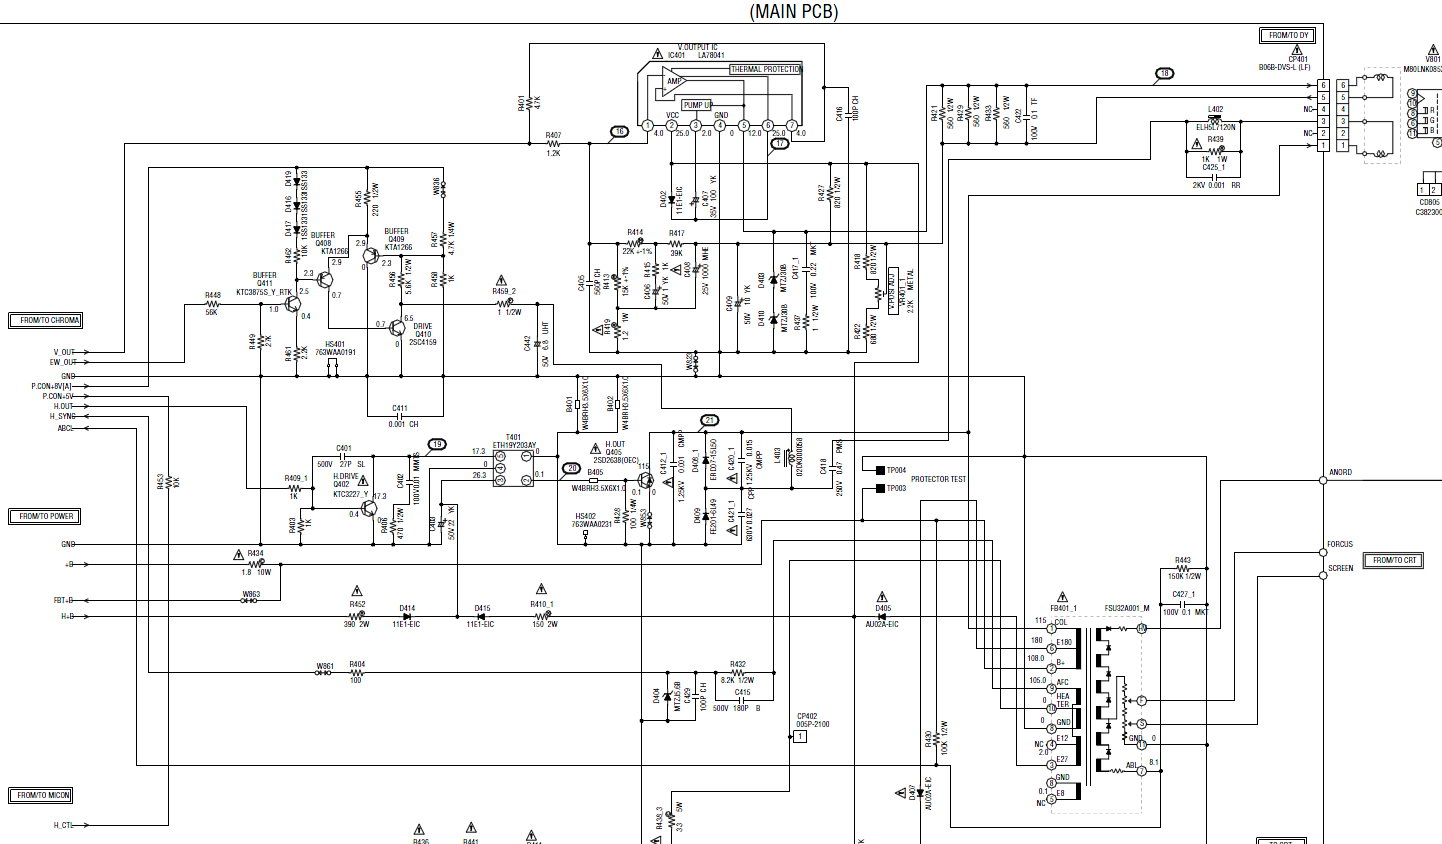 File Electrical Schematic Symbols additionally Samsung Tv Schematic Diagrams likewise Msd Mc 3 Ignition Wiring To Stock Dual Coil Ignition System together with Samsung Galaxy Tab 48 Wiring Diagrams further Control Circuit Diagrams. on toshiba tv wiring diagrams